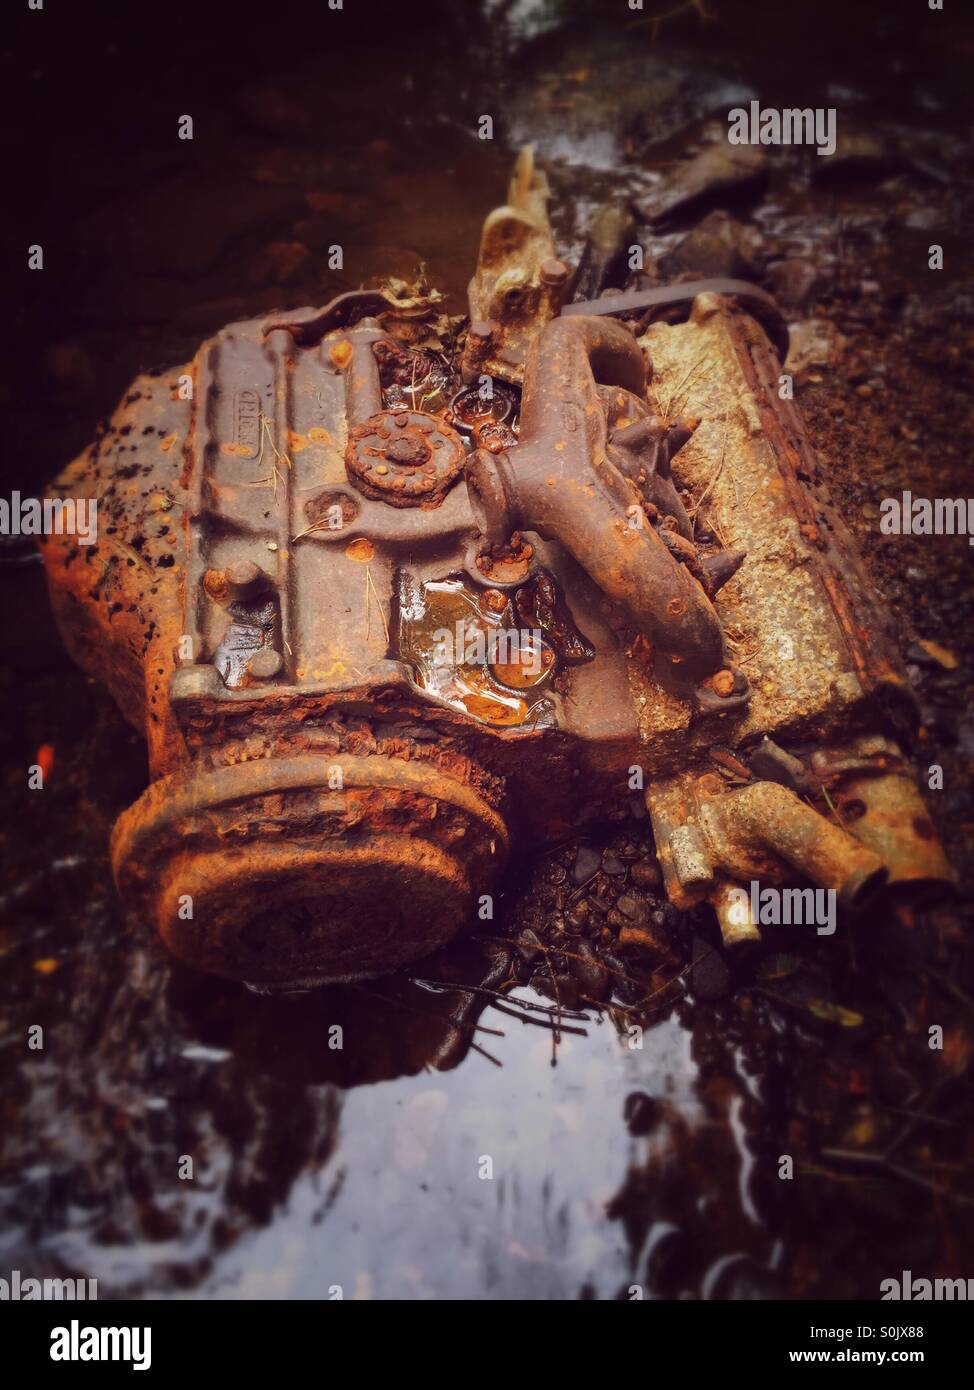 Rusting Engine, an old car engine that has been washed down a stream in the forest, slowly rusting away. - Stock Image